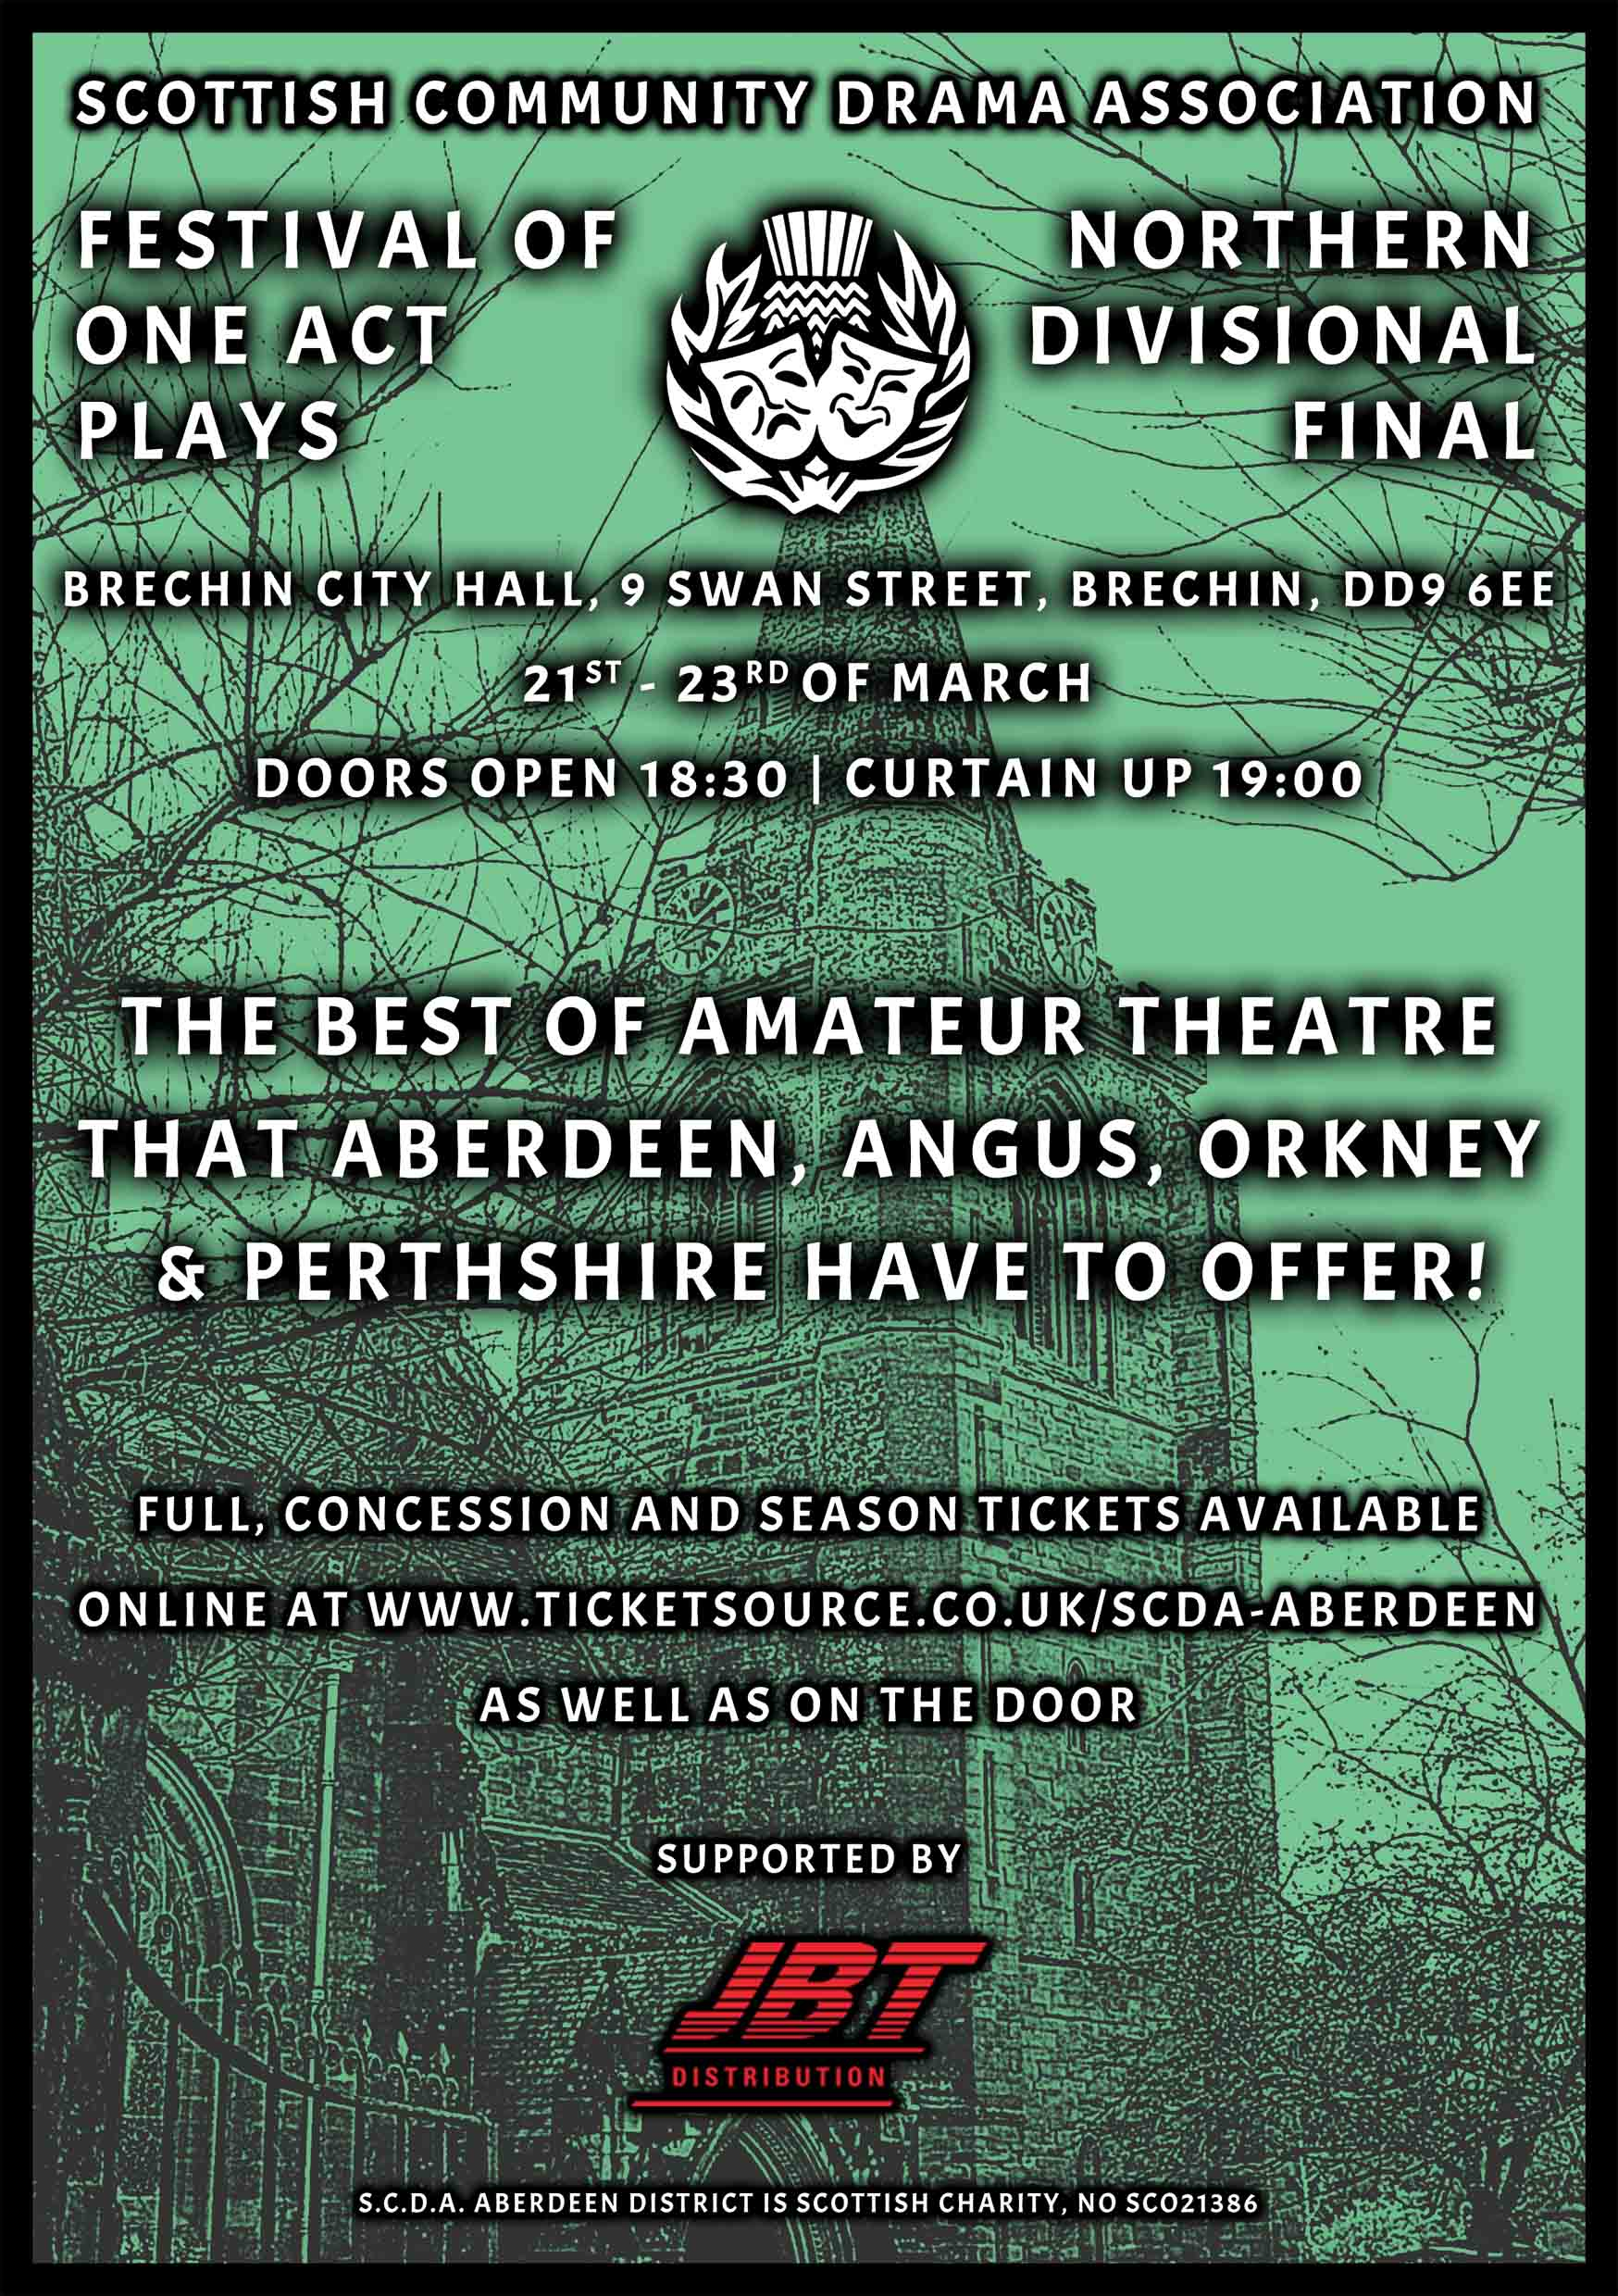 S C D A  Festival of One Act Plays 2019: Northern Divisional